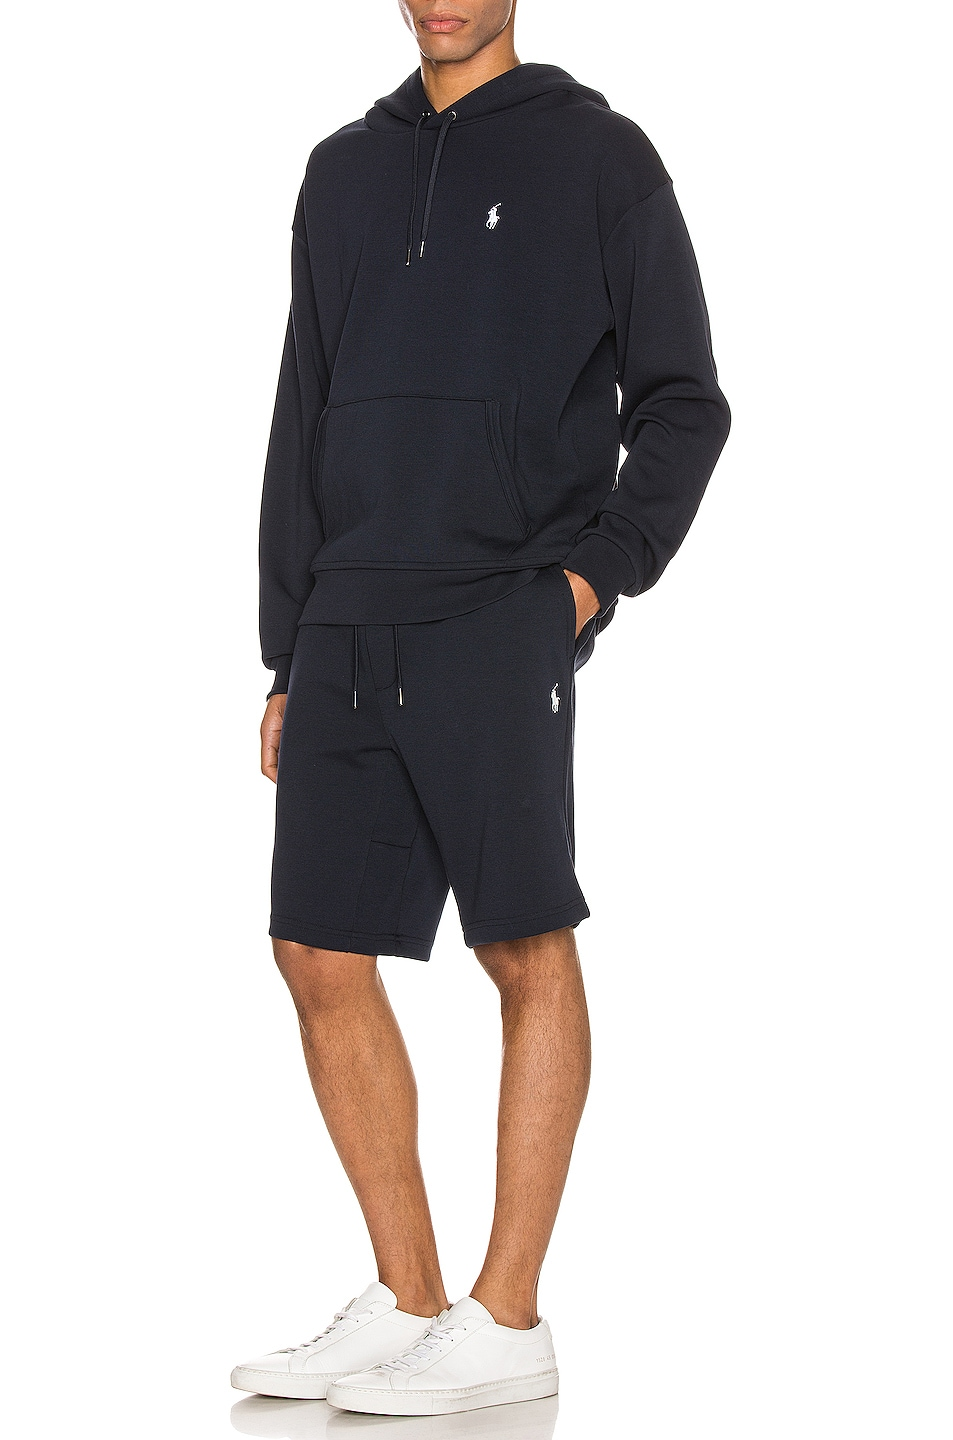 Image 5 of Polo Ralph Lauren Double Knit Tech Shorts in Aviator Navy